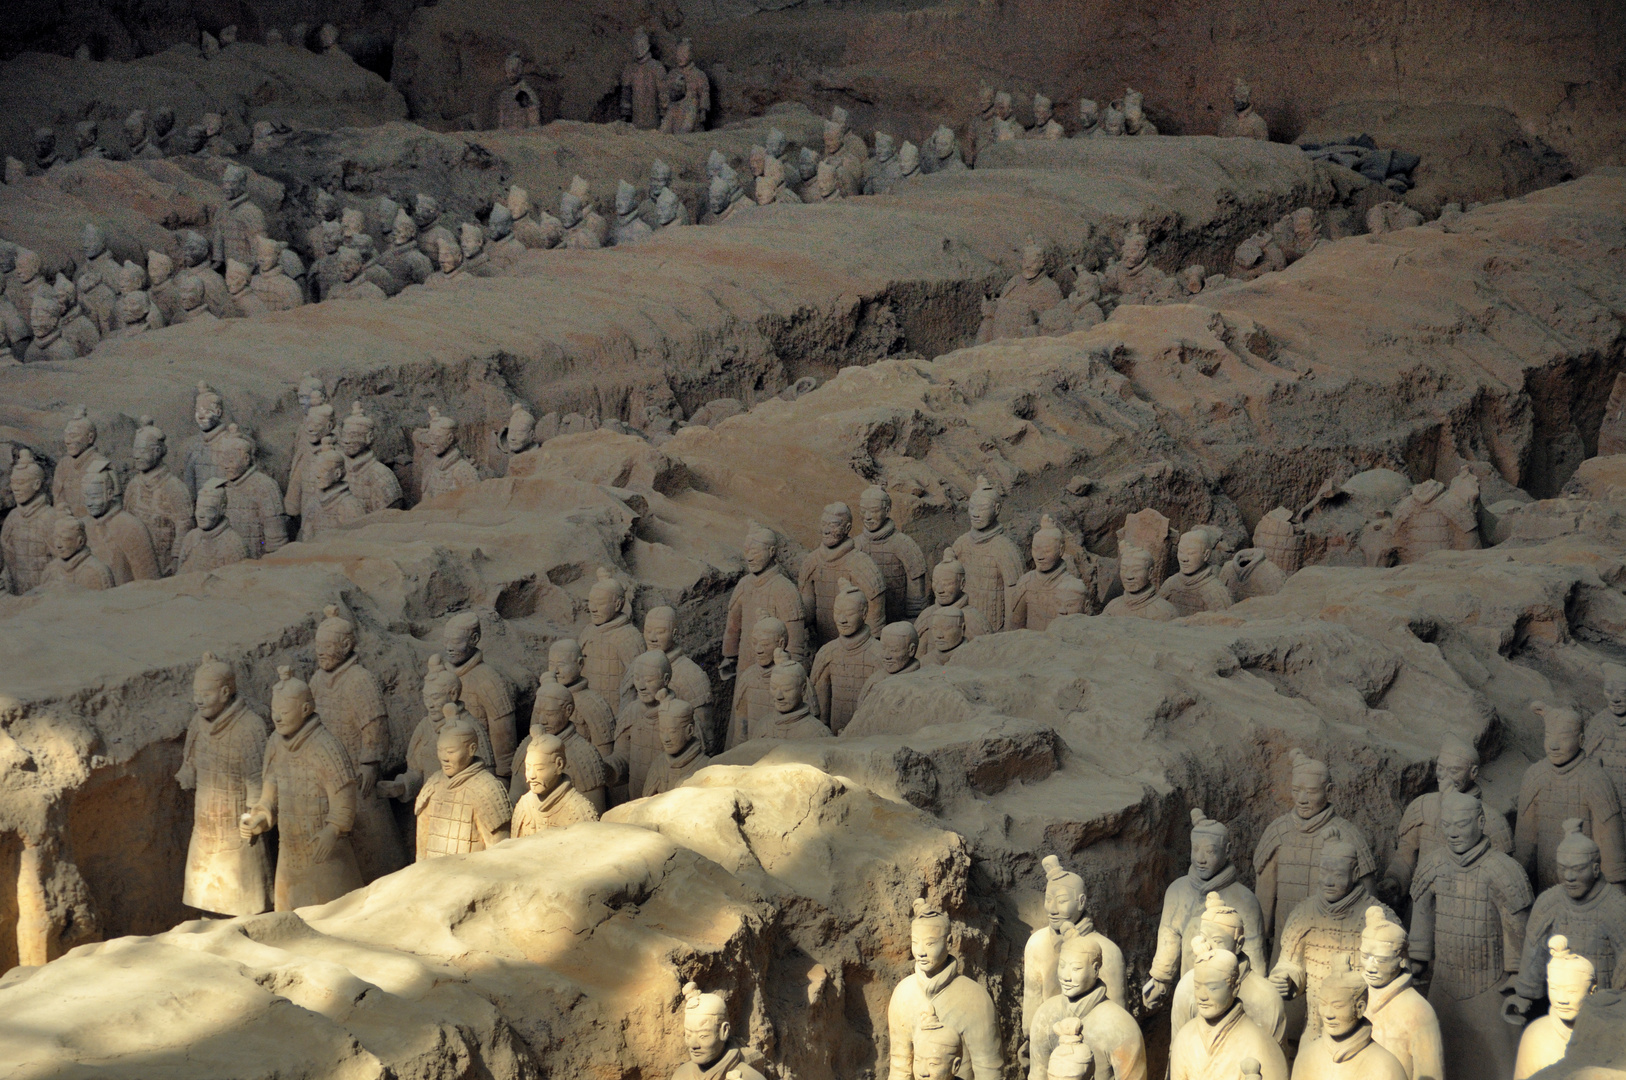 Terracotta Army - light and shadow